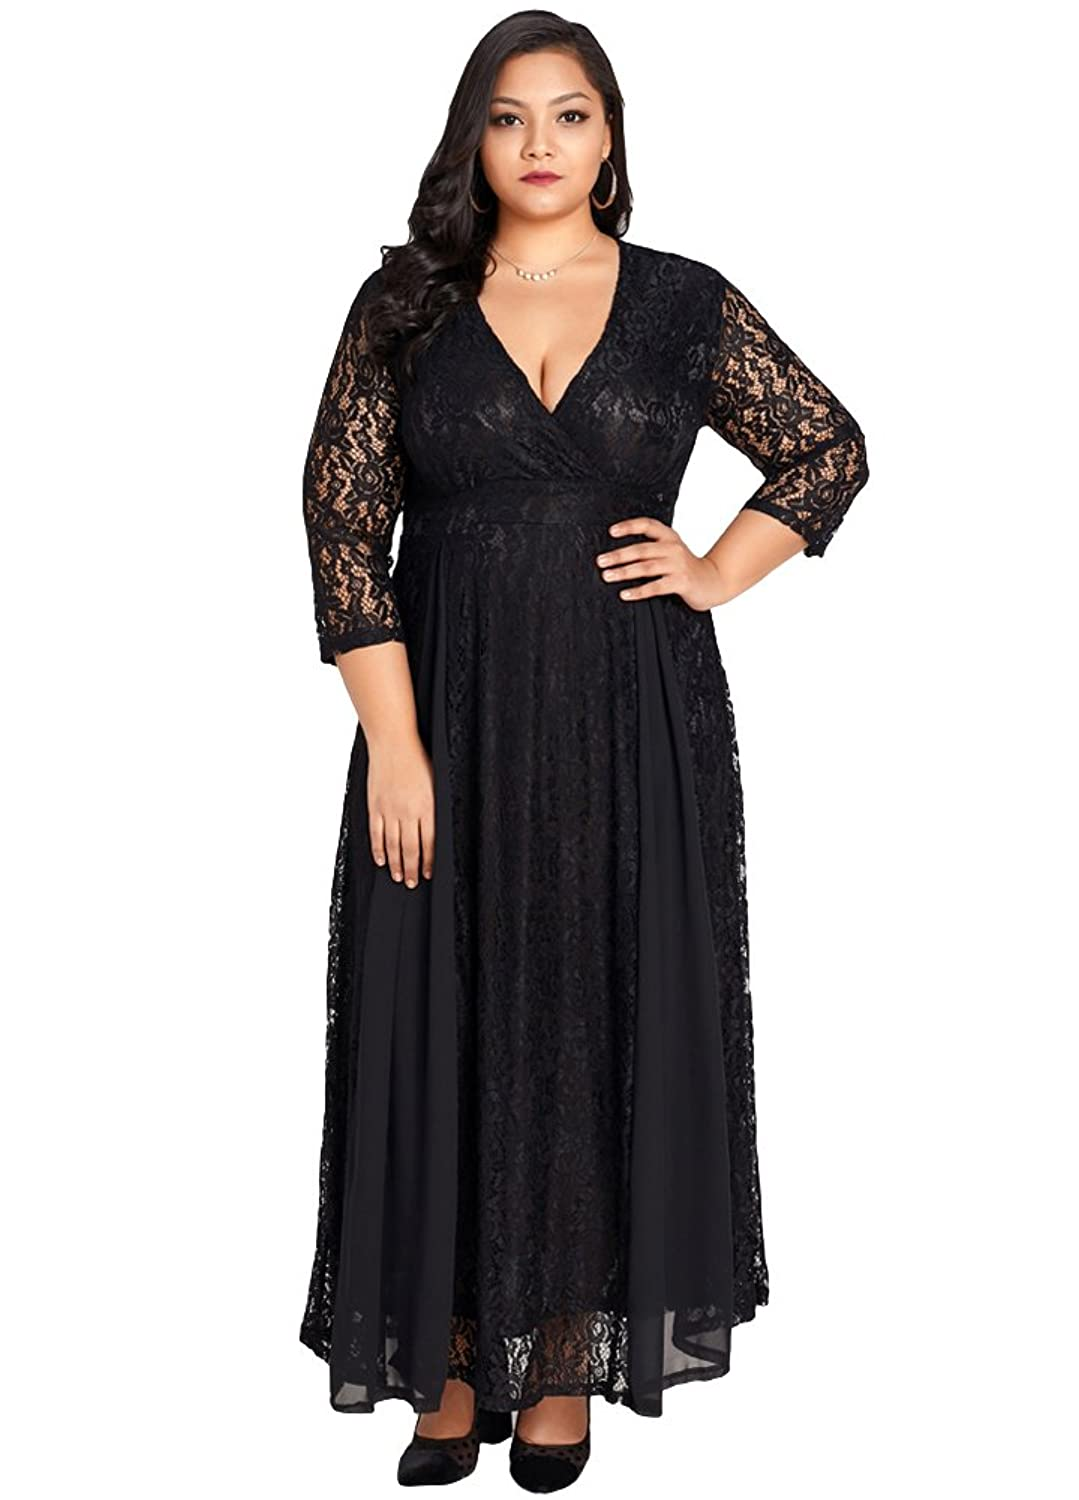 7a71caf1d6d ☆QUALITY COMFORT  Lace maxi dress plus size crafted from a romantic  exquisite lace fabric